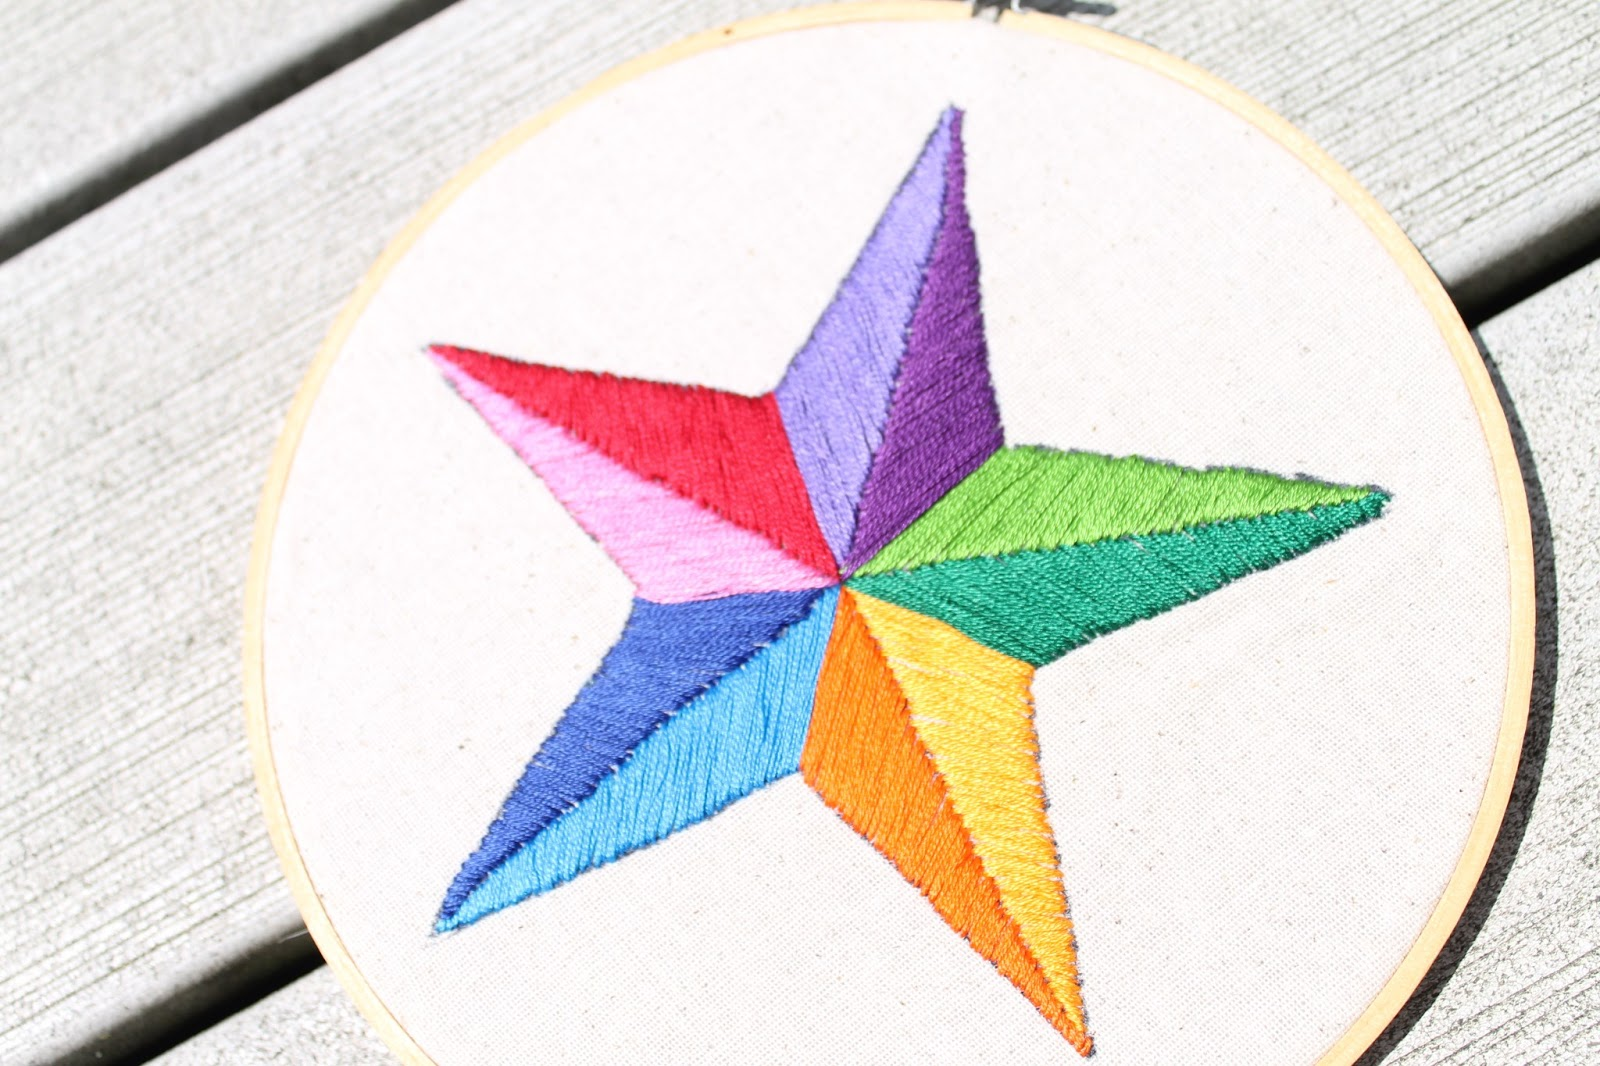 How to Embroider by Hand - Satin stitch